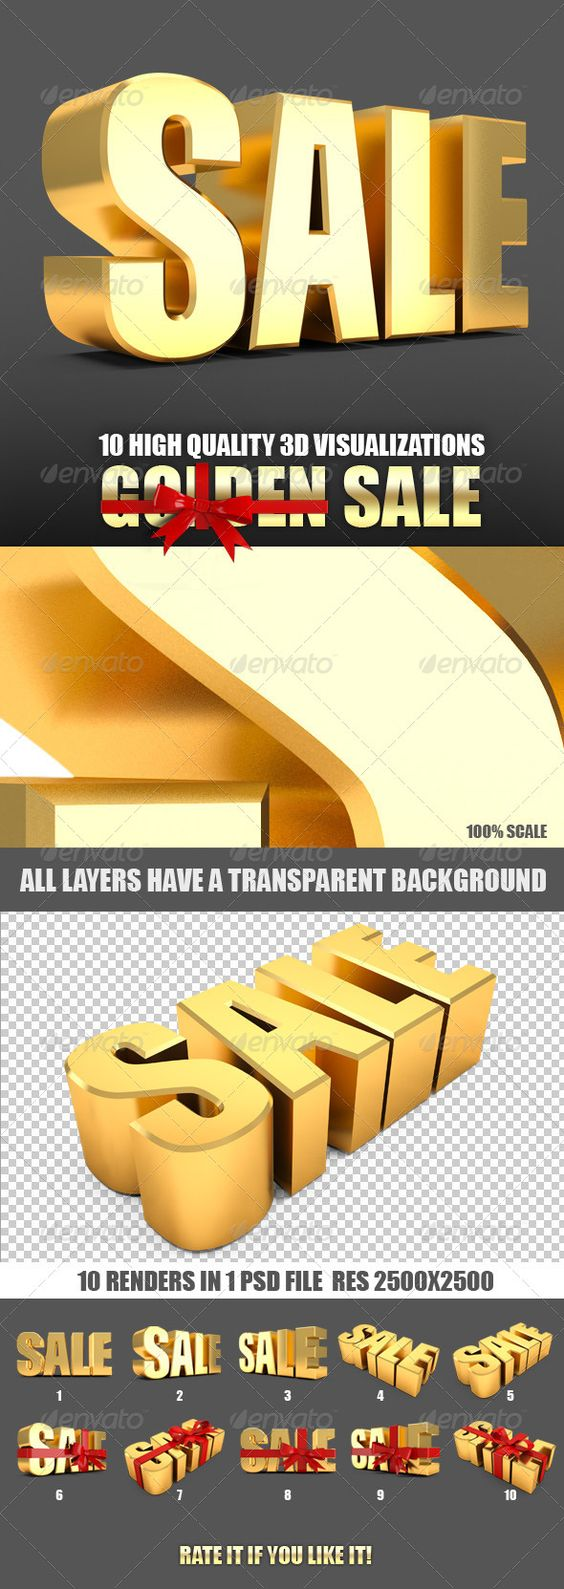 "Sale and sale label tied with red ribbon 3d  #GraphicRiver         Golden Sale and sale label tied with red ribbon 3d.  	 Set includes 1 psd files (sale.psd) 2500?2500 resolution (300dpi 8.3?8.3 inch high quality print) PSD file include 10 separate layers with a transparent background on each layer of visualization labels ""sale"".  	 You can put a objects on any background, to use it in their presentations and design. Change the size, mirror, dream, add others, add your own text to create…"